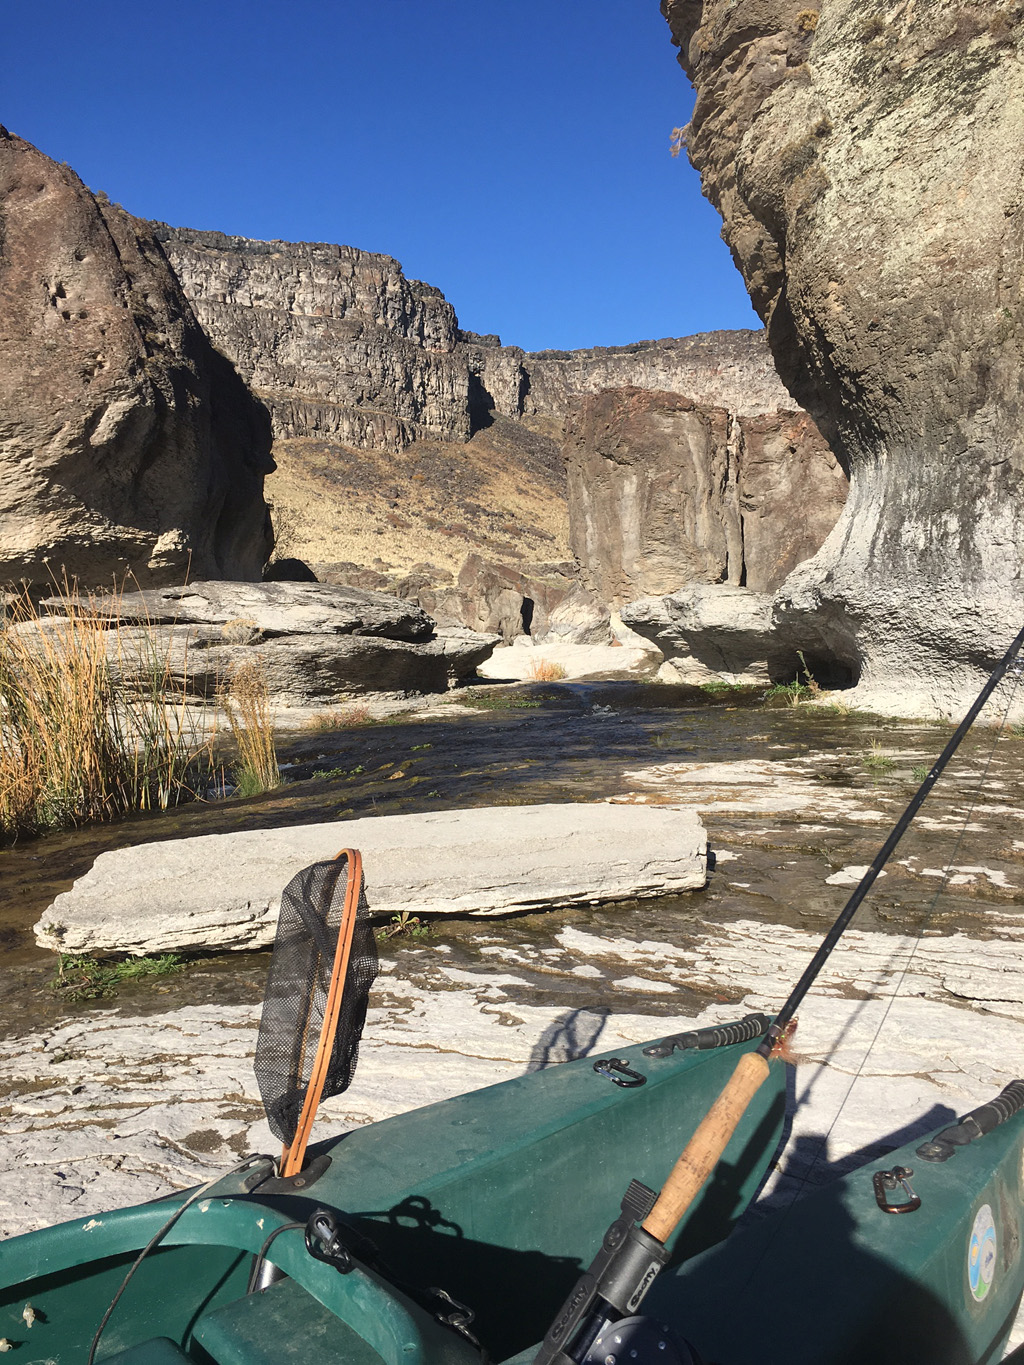 pillar-falls-area-on-the-snake-it-is-a-favorite-paddling-destination-here-and-the-fishing-is-good-too